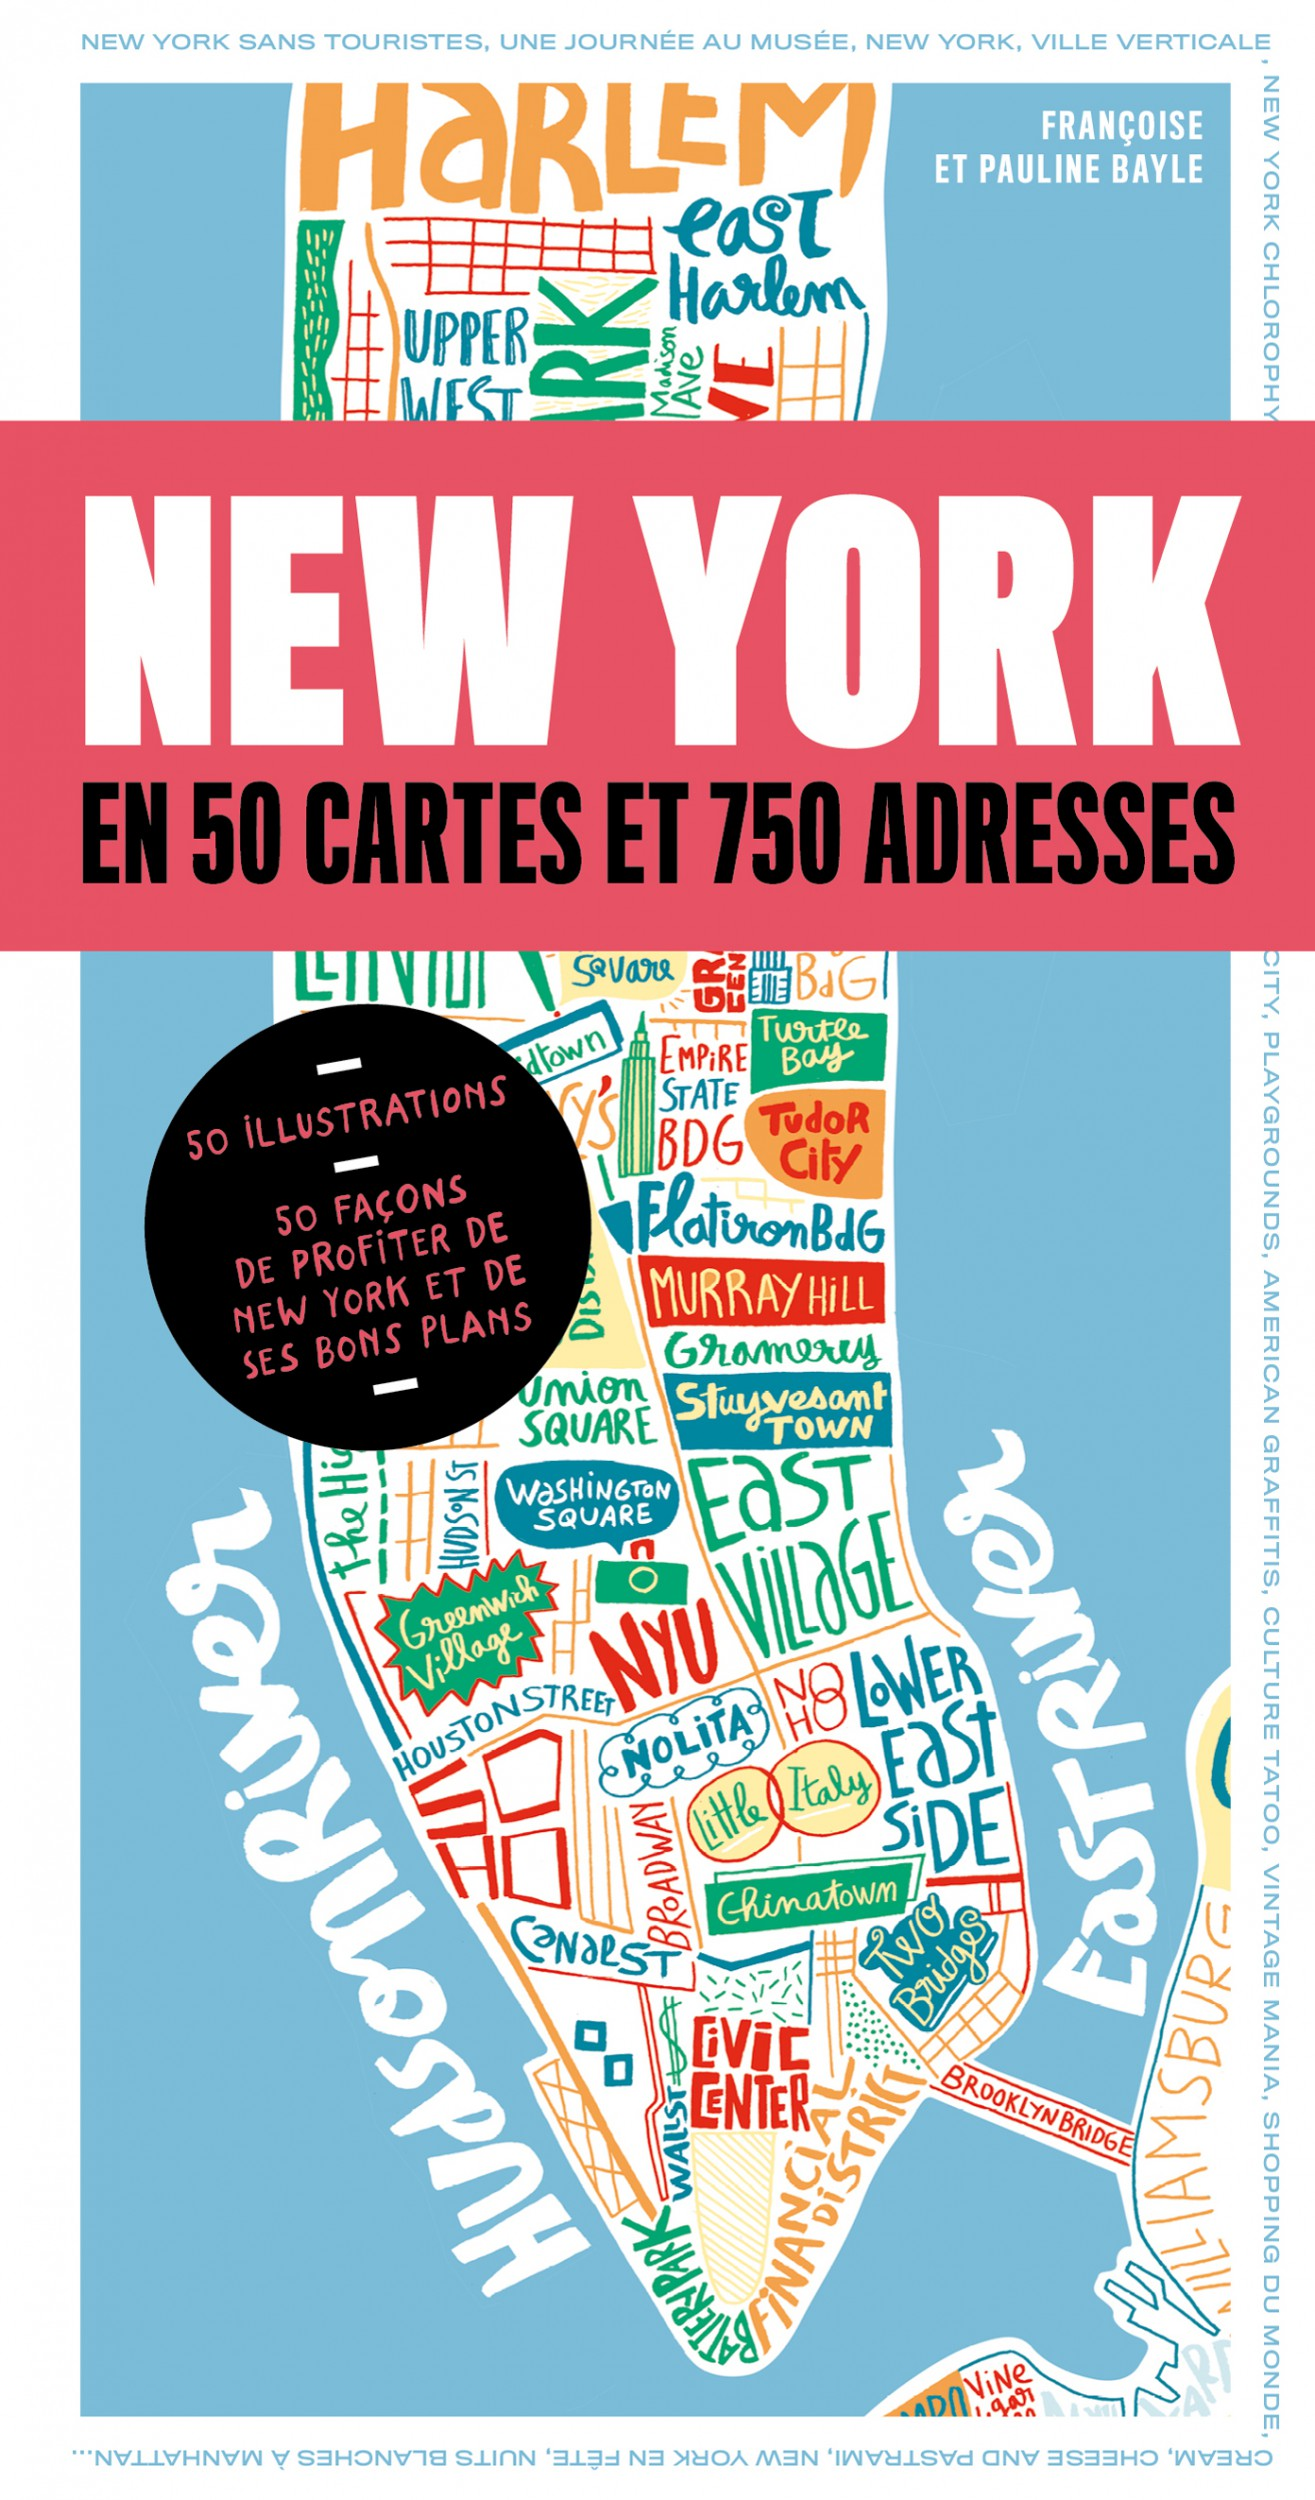 https://www.oloeditions.com/wp-content/uploads/2015/06/50-MAPS-NEW-YORK-1COUV-1315x2500.jpg